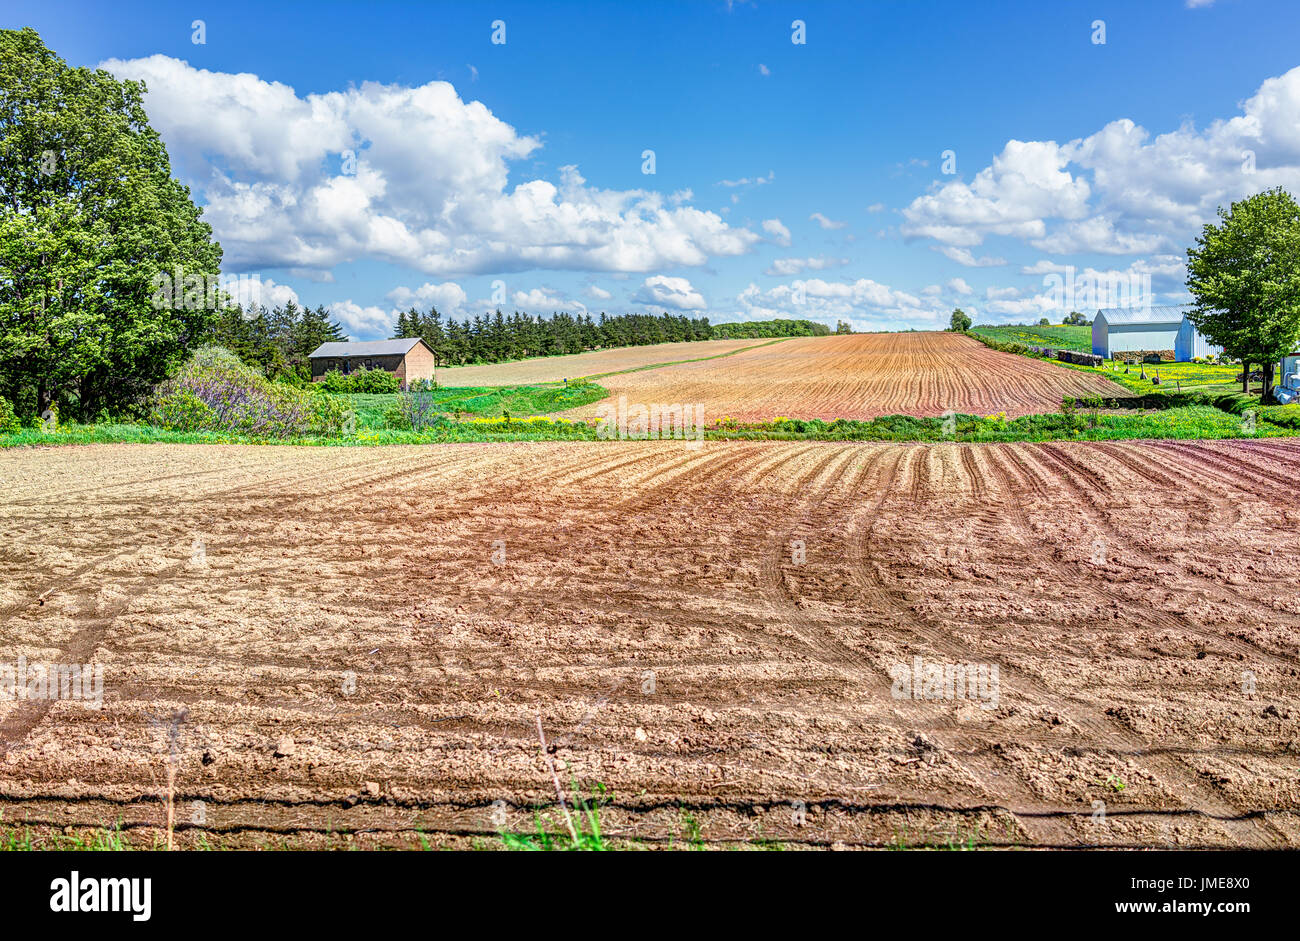 Ile D'Orleans landscape with brown raked field furrows in summer for potatoes and farm house - Stock Image